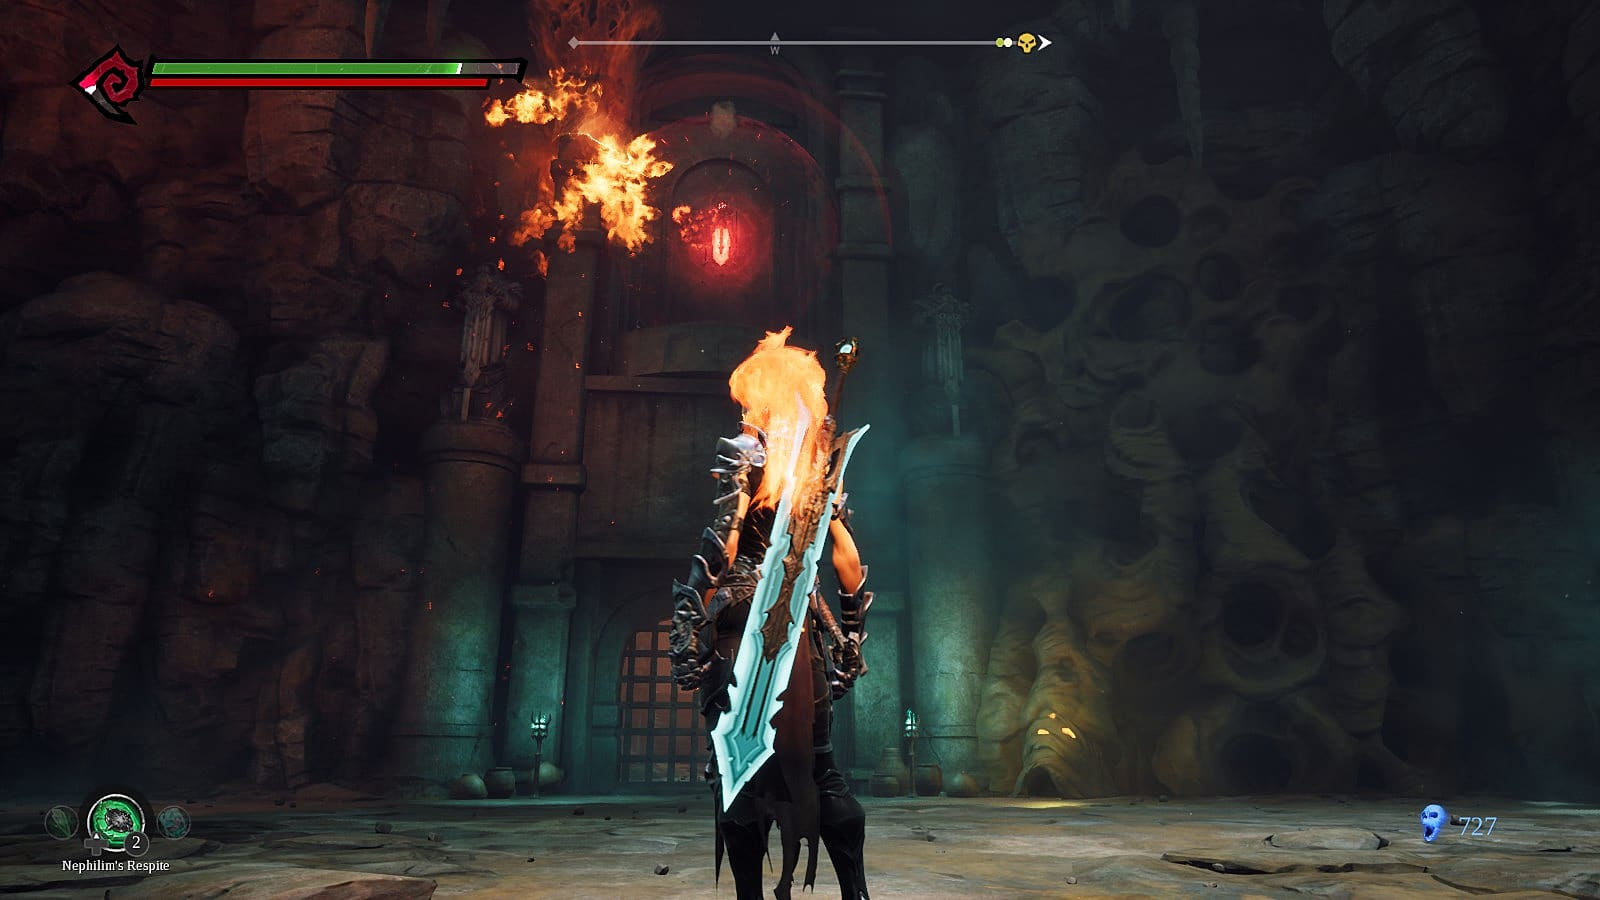 How to Complete the Web Puzzles in Darksiders 3